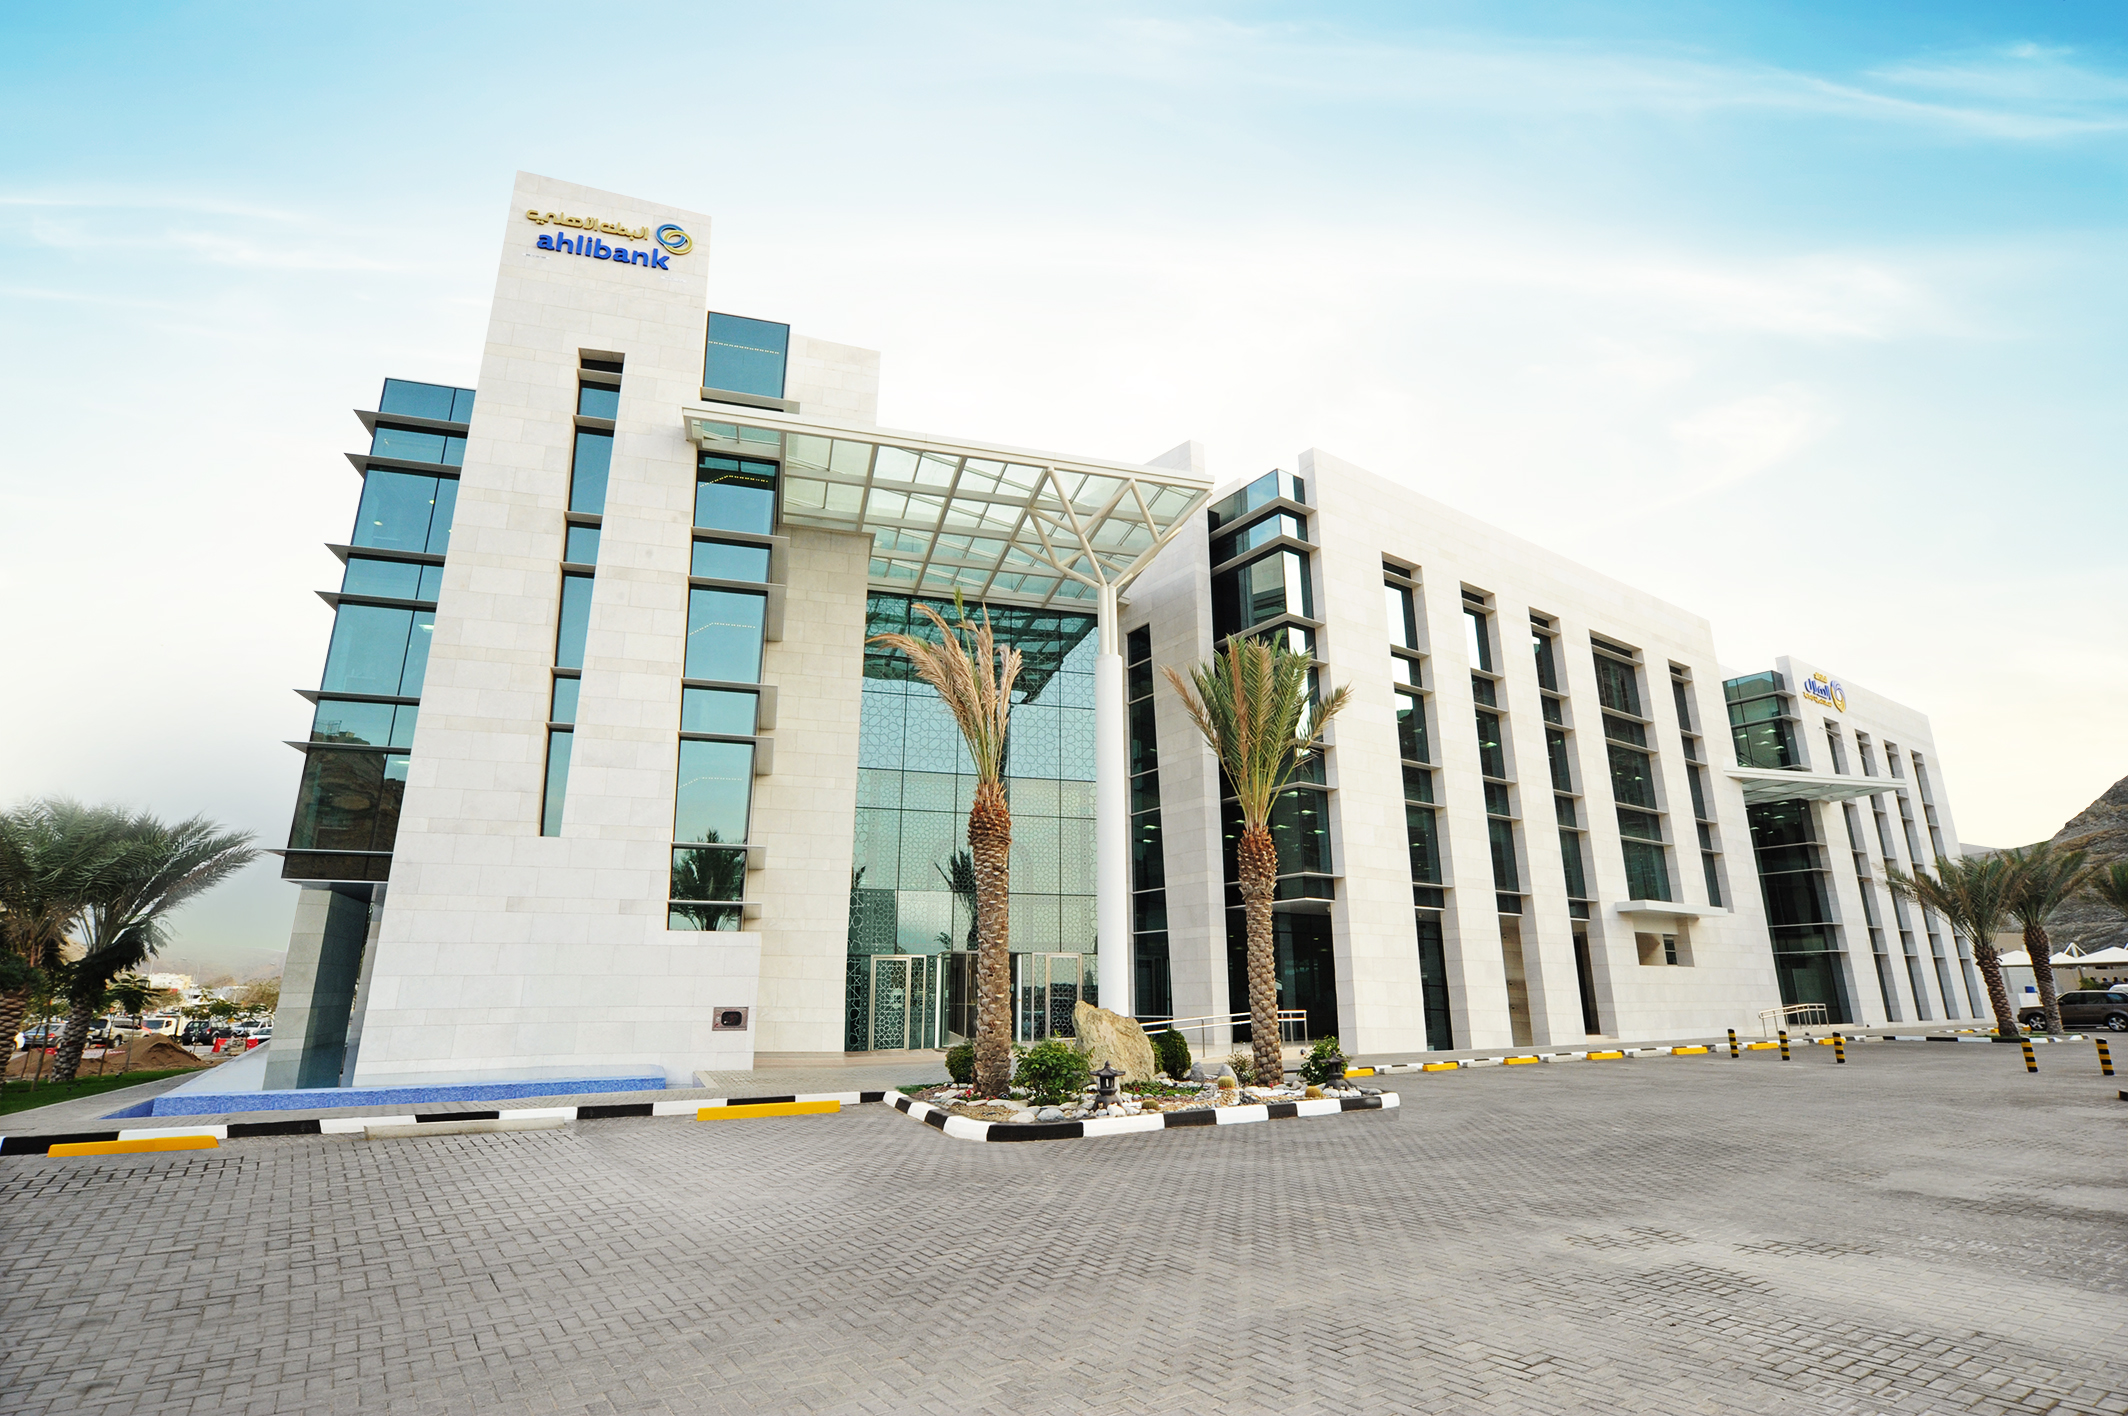 ahlibank MyGlobal provides a host of beneficial product offerings